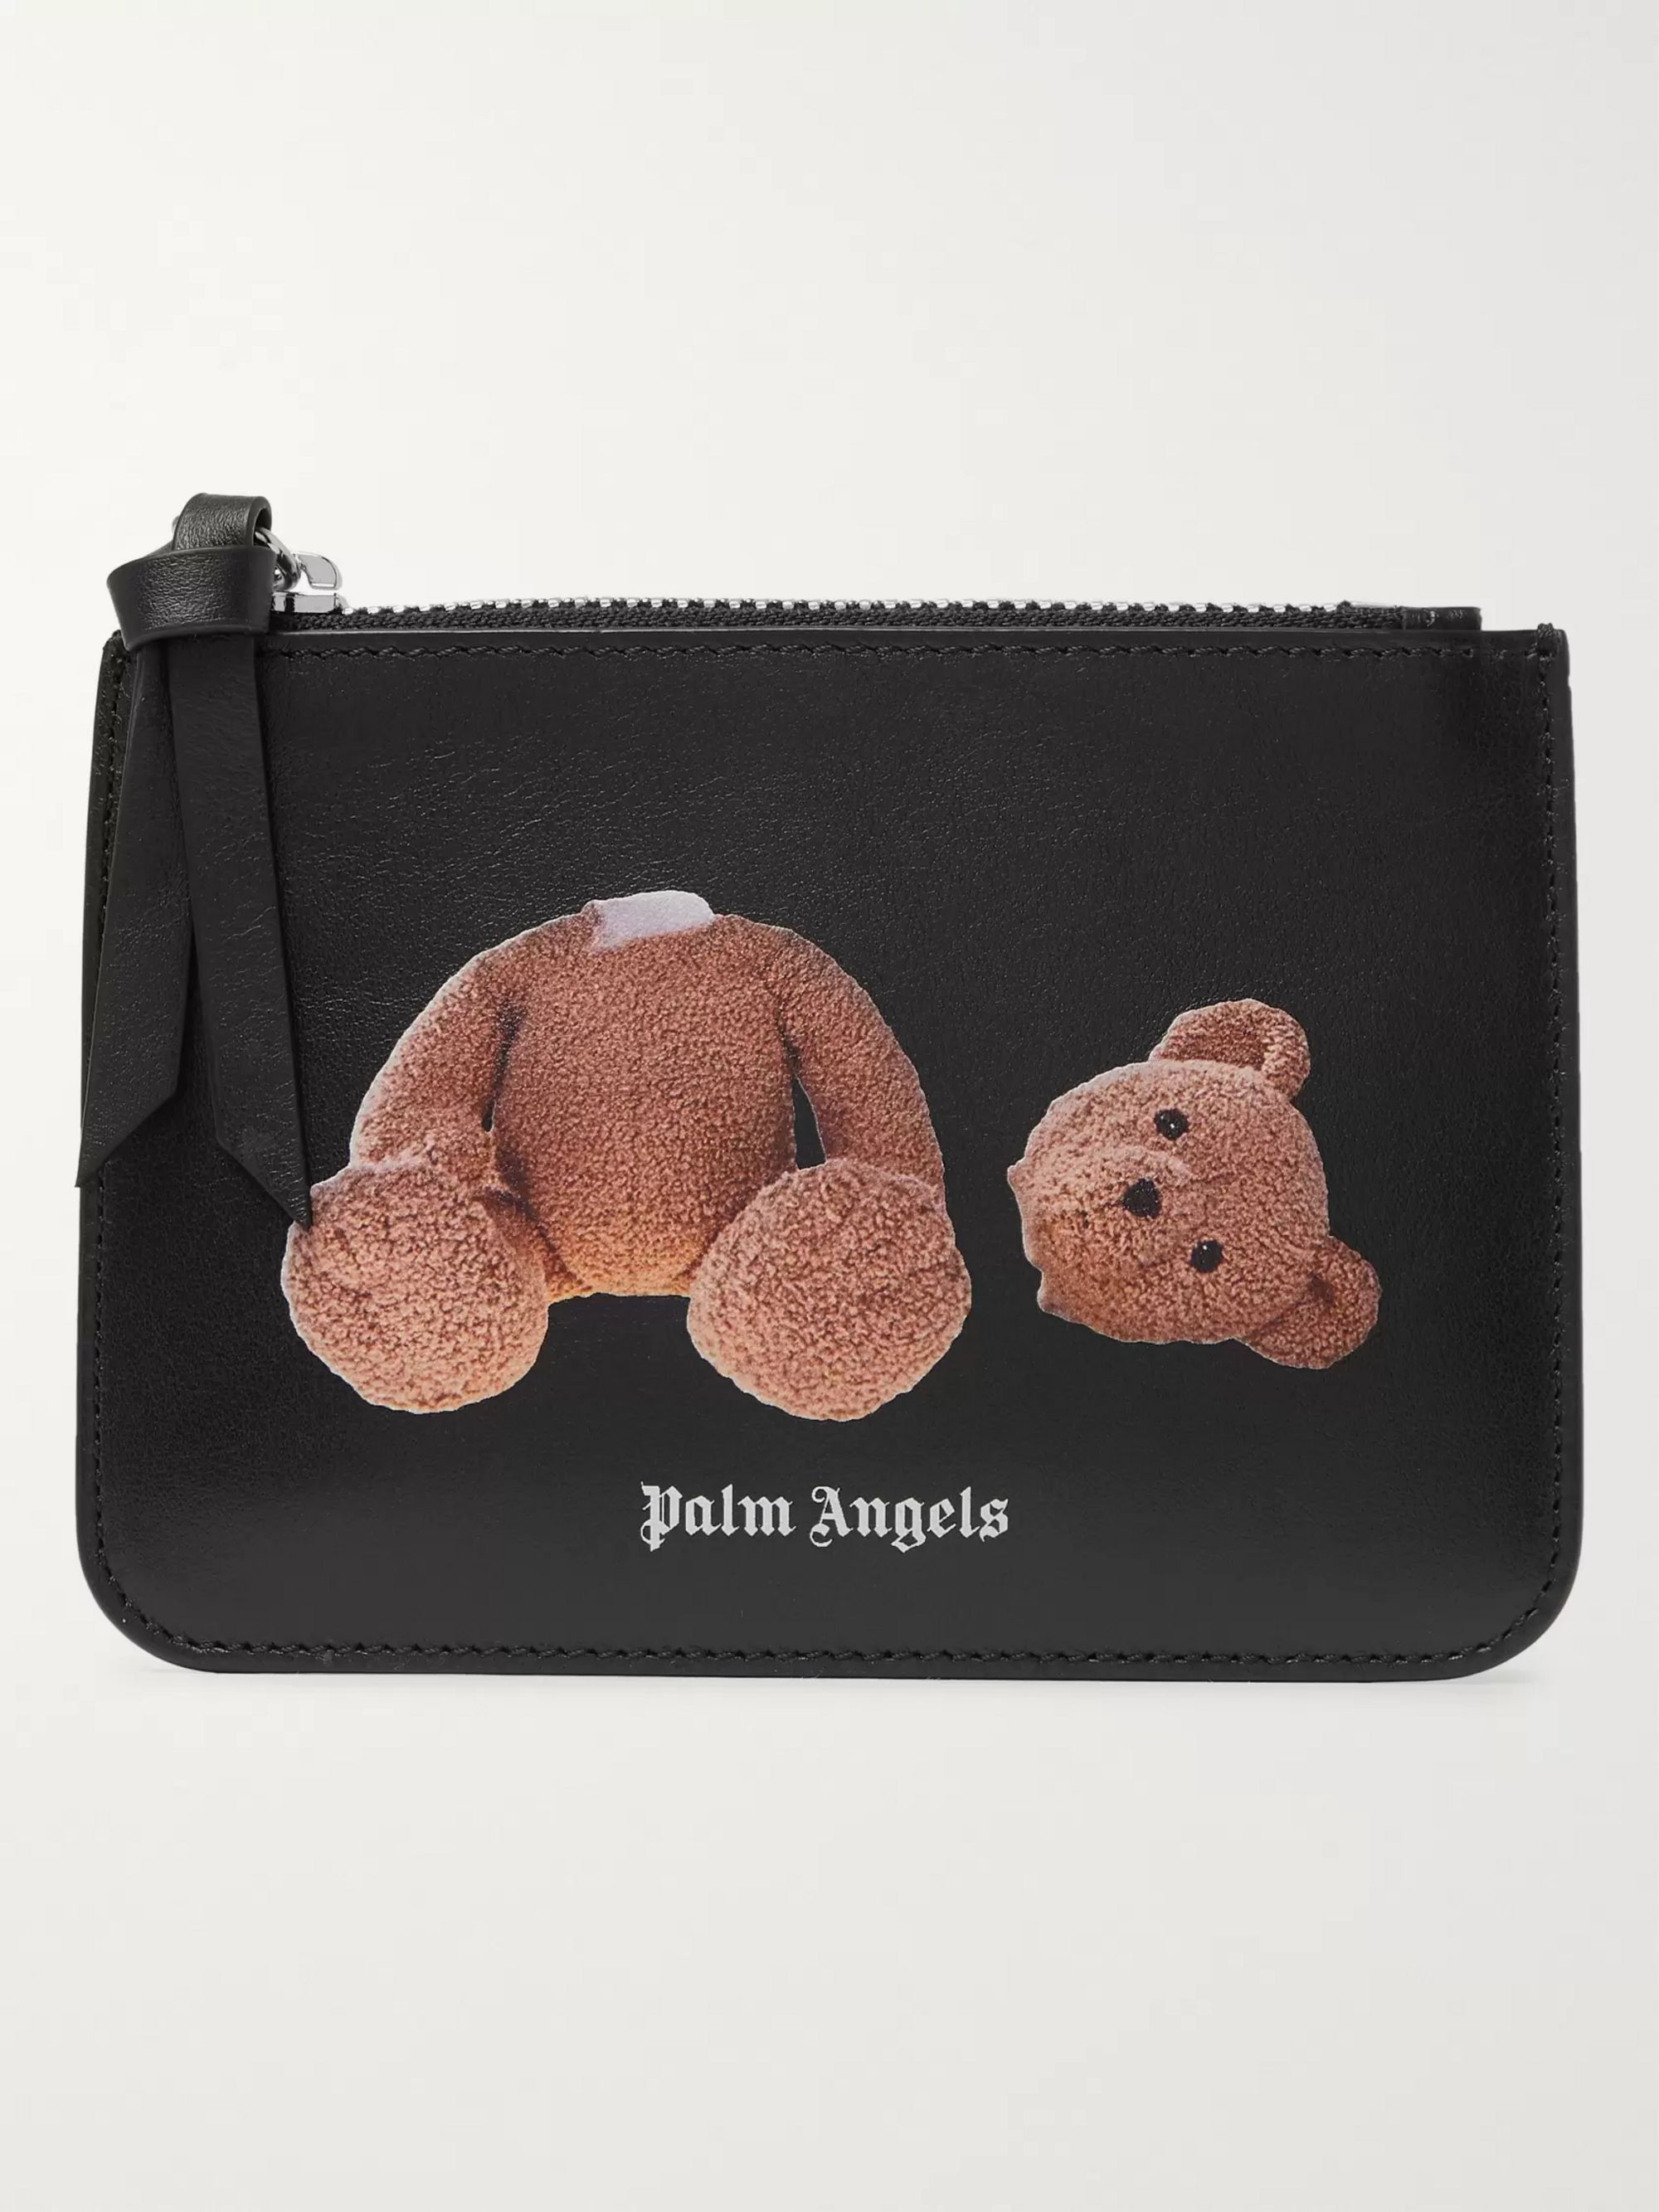 Palm Angels Printed Leather Wallet